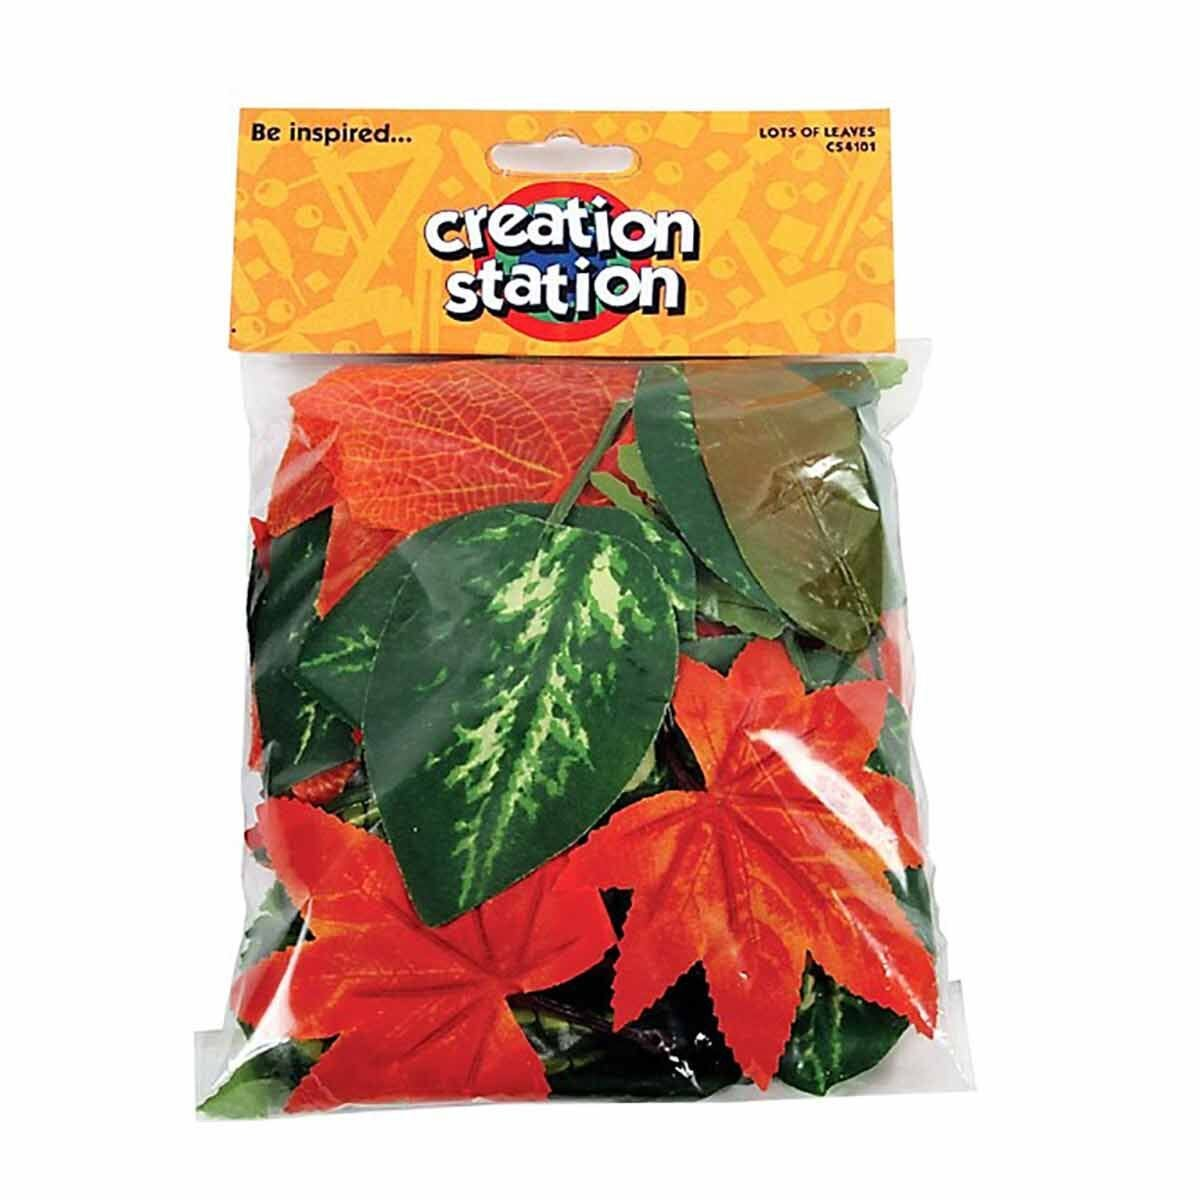 Creation Station Lots of Leaves Pack